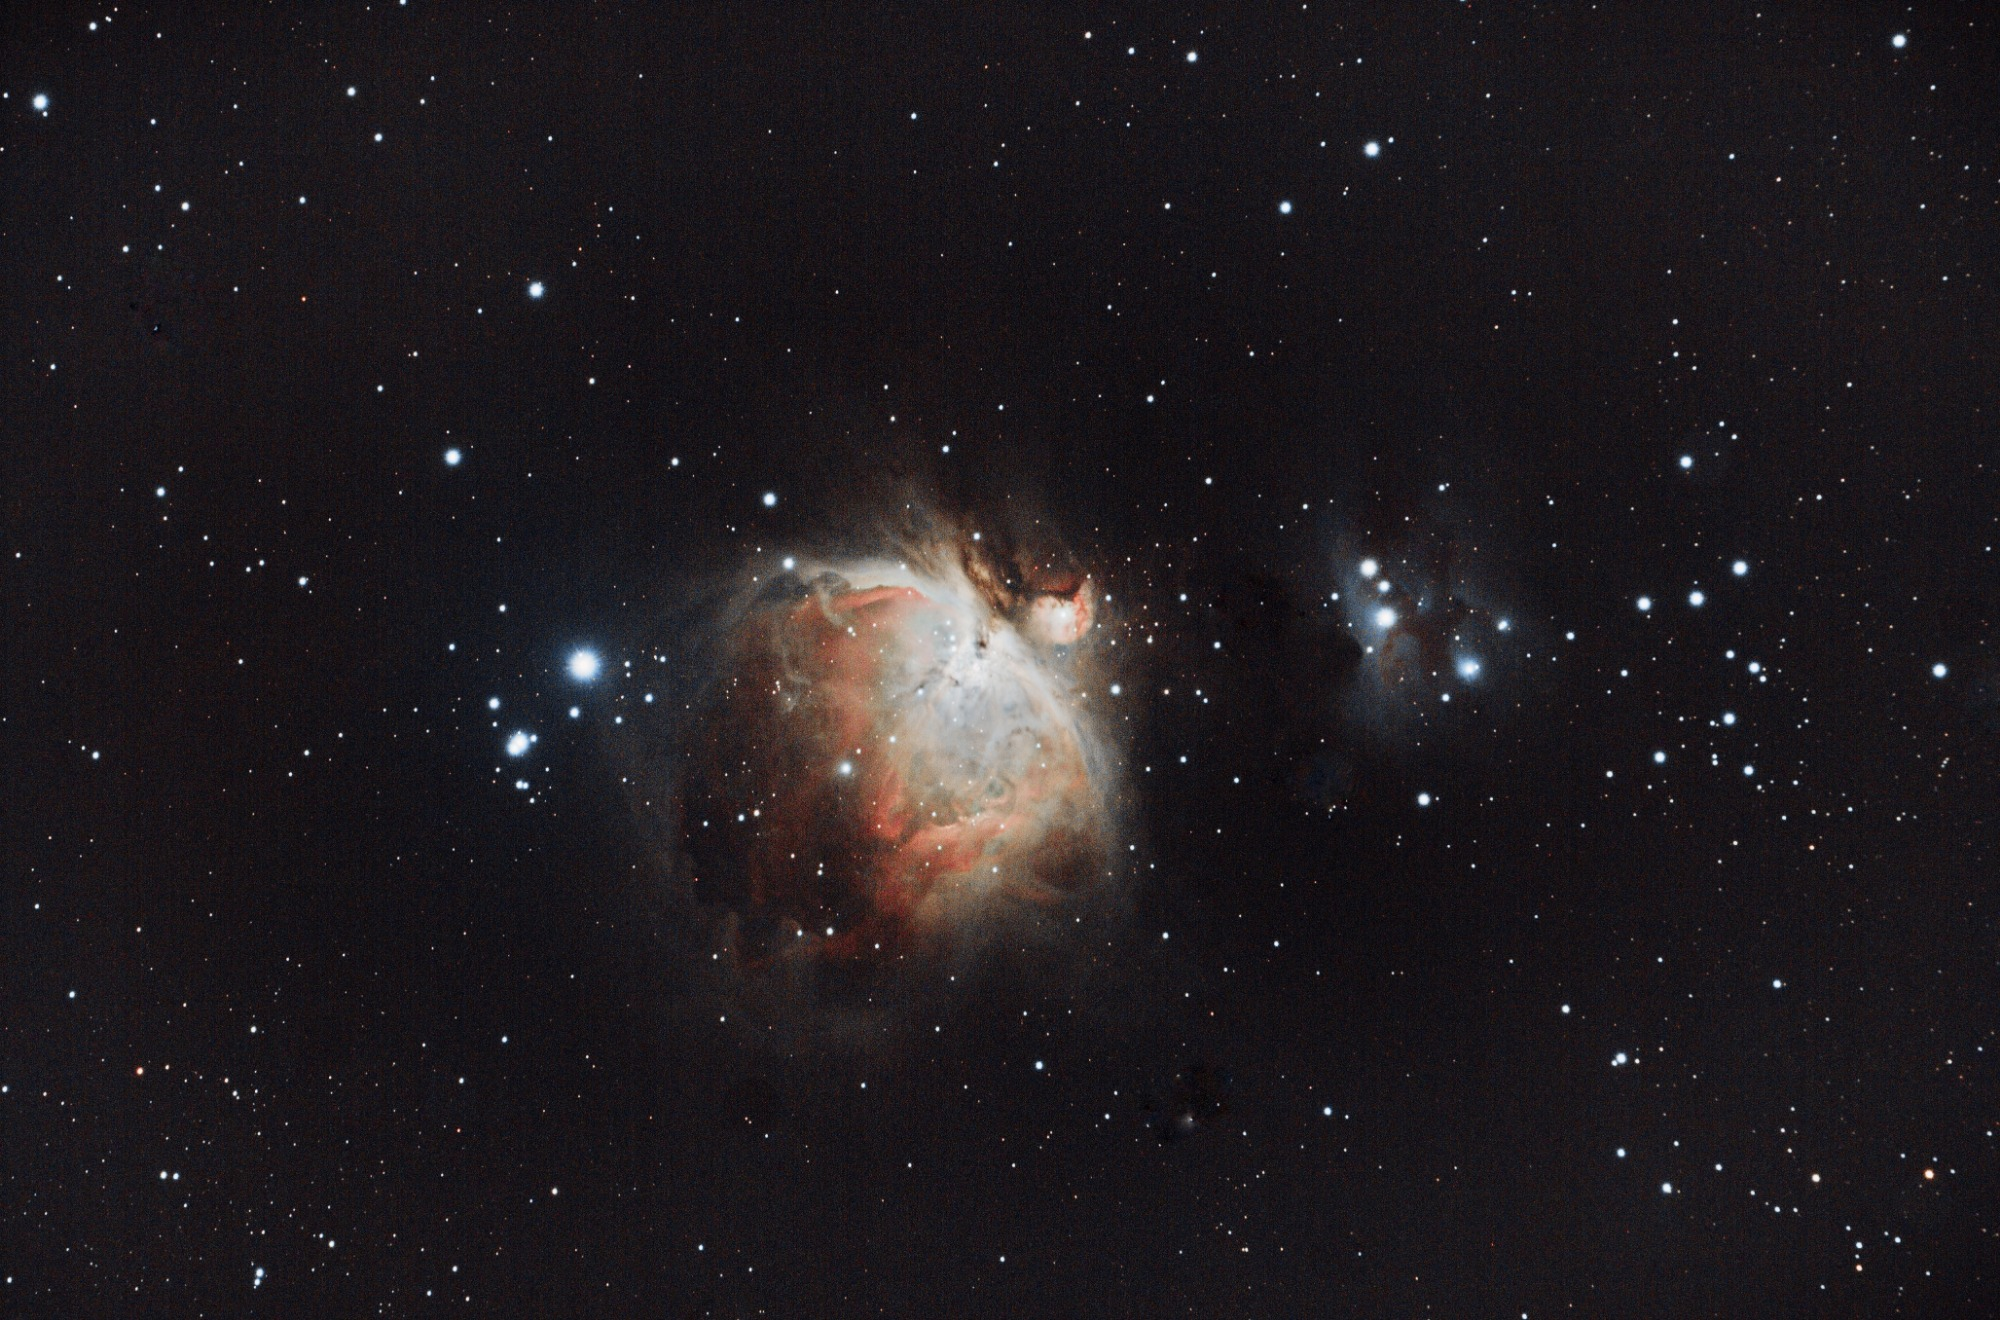 Orion_Nebula_M42_HDR_light_FILTER_OSC_BINNING_1_integration_ABE-16-healed-cropped.jpg